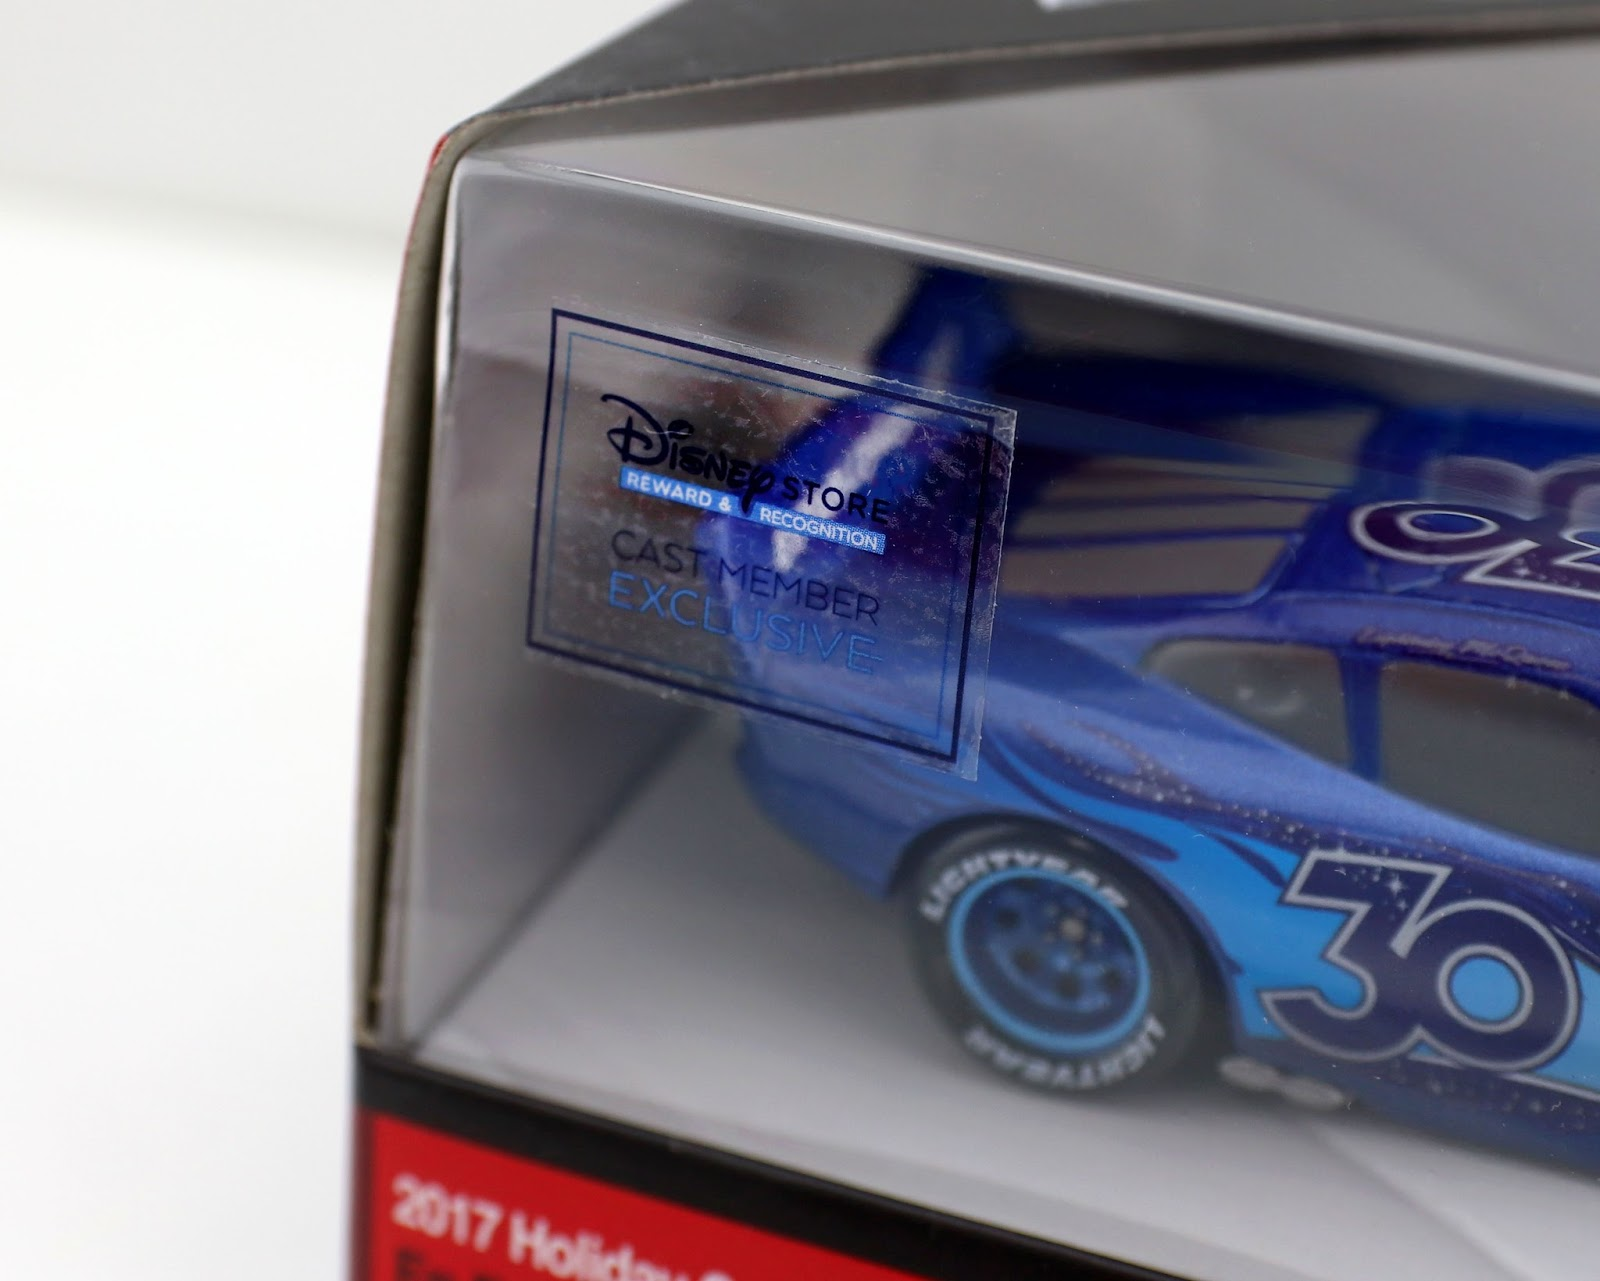 2017 holiday disney store cast member exclusive lightning mcqueen